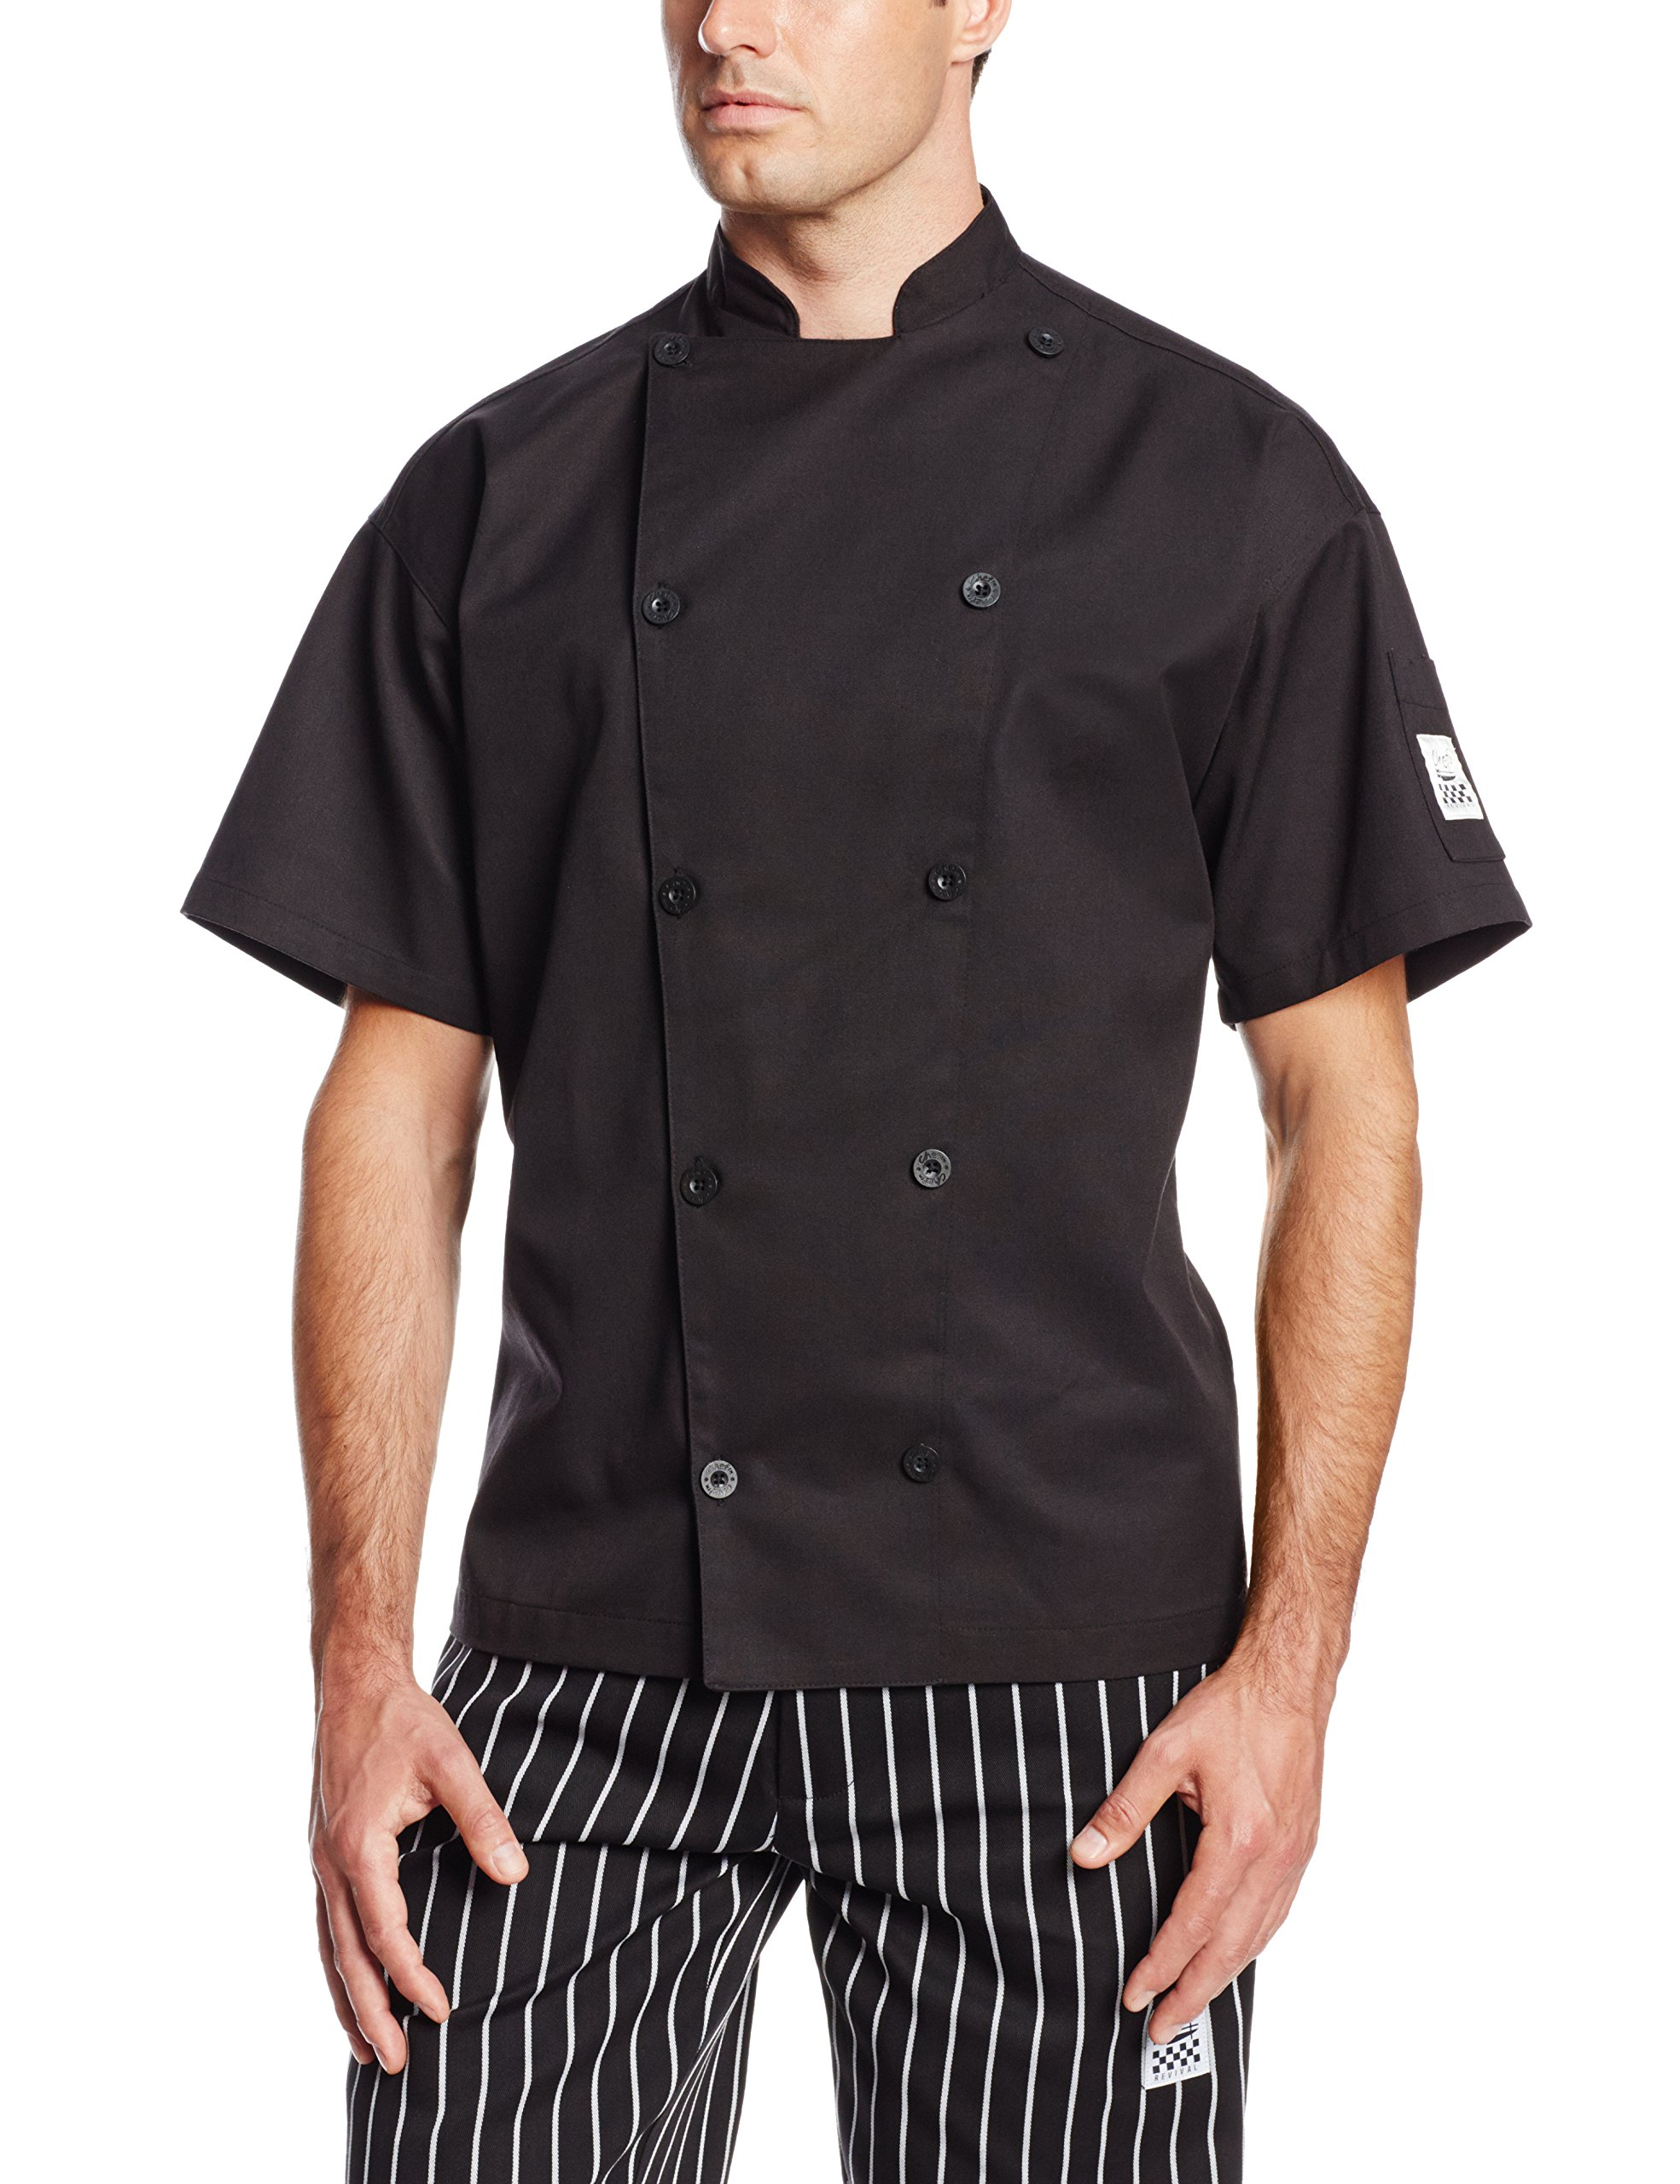 Chef Revival J045BK Chef-Tex Poly Cotton Traditional Short Sleeve Chef Jacket with Chef Logo Button, 5X-Large, Black